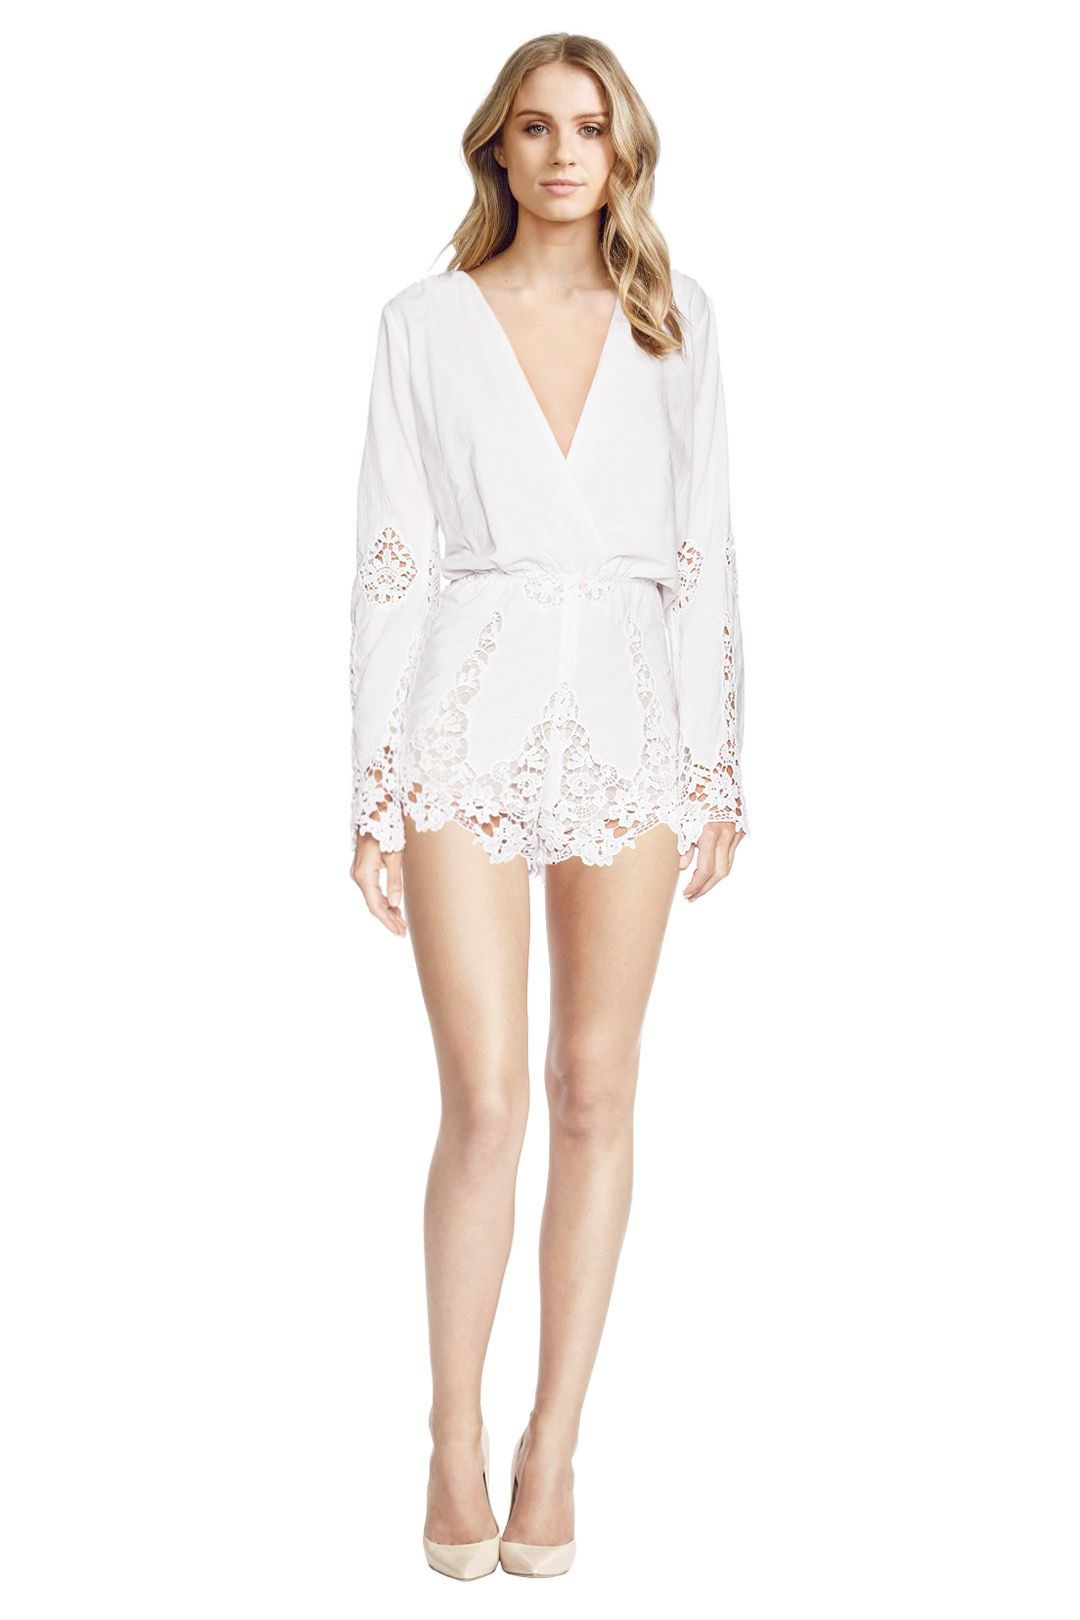 Stone Cold Fox - Te Amo White Playsuit - White - Front